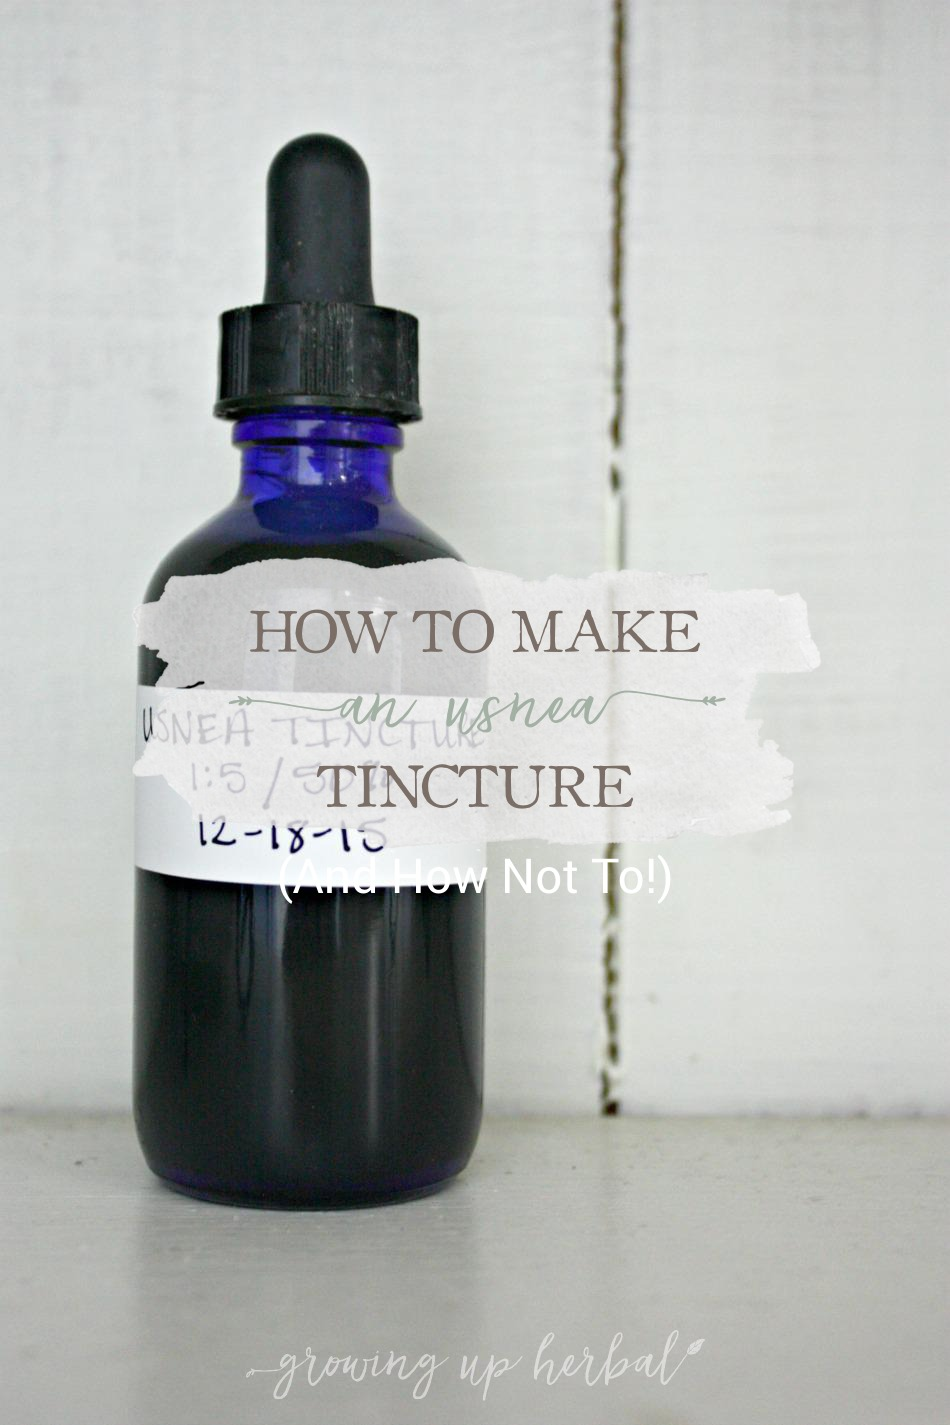 How To Make An Usnea Tincture (And How Not To) | Growing Up Herbal | Learn how to make an usnea tincture the right way and the wrong way.